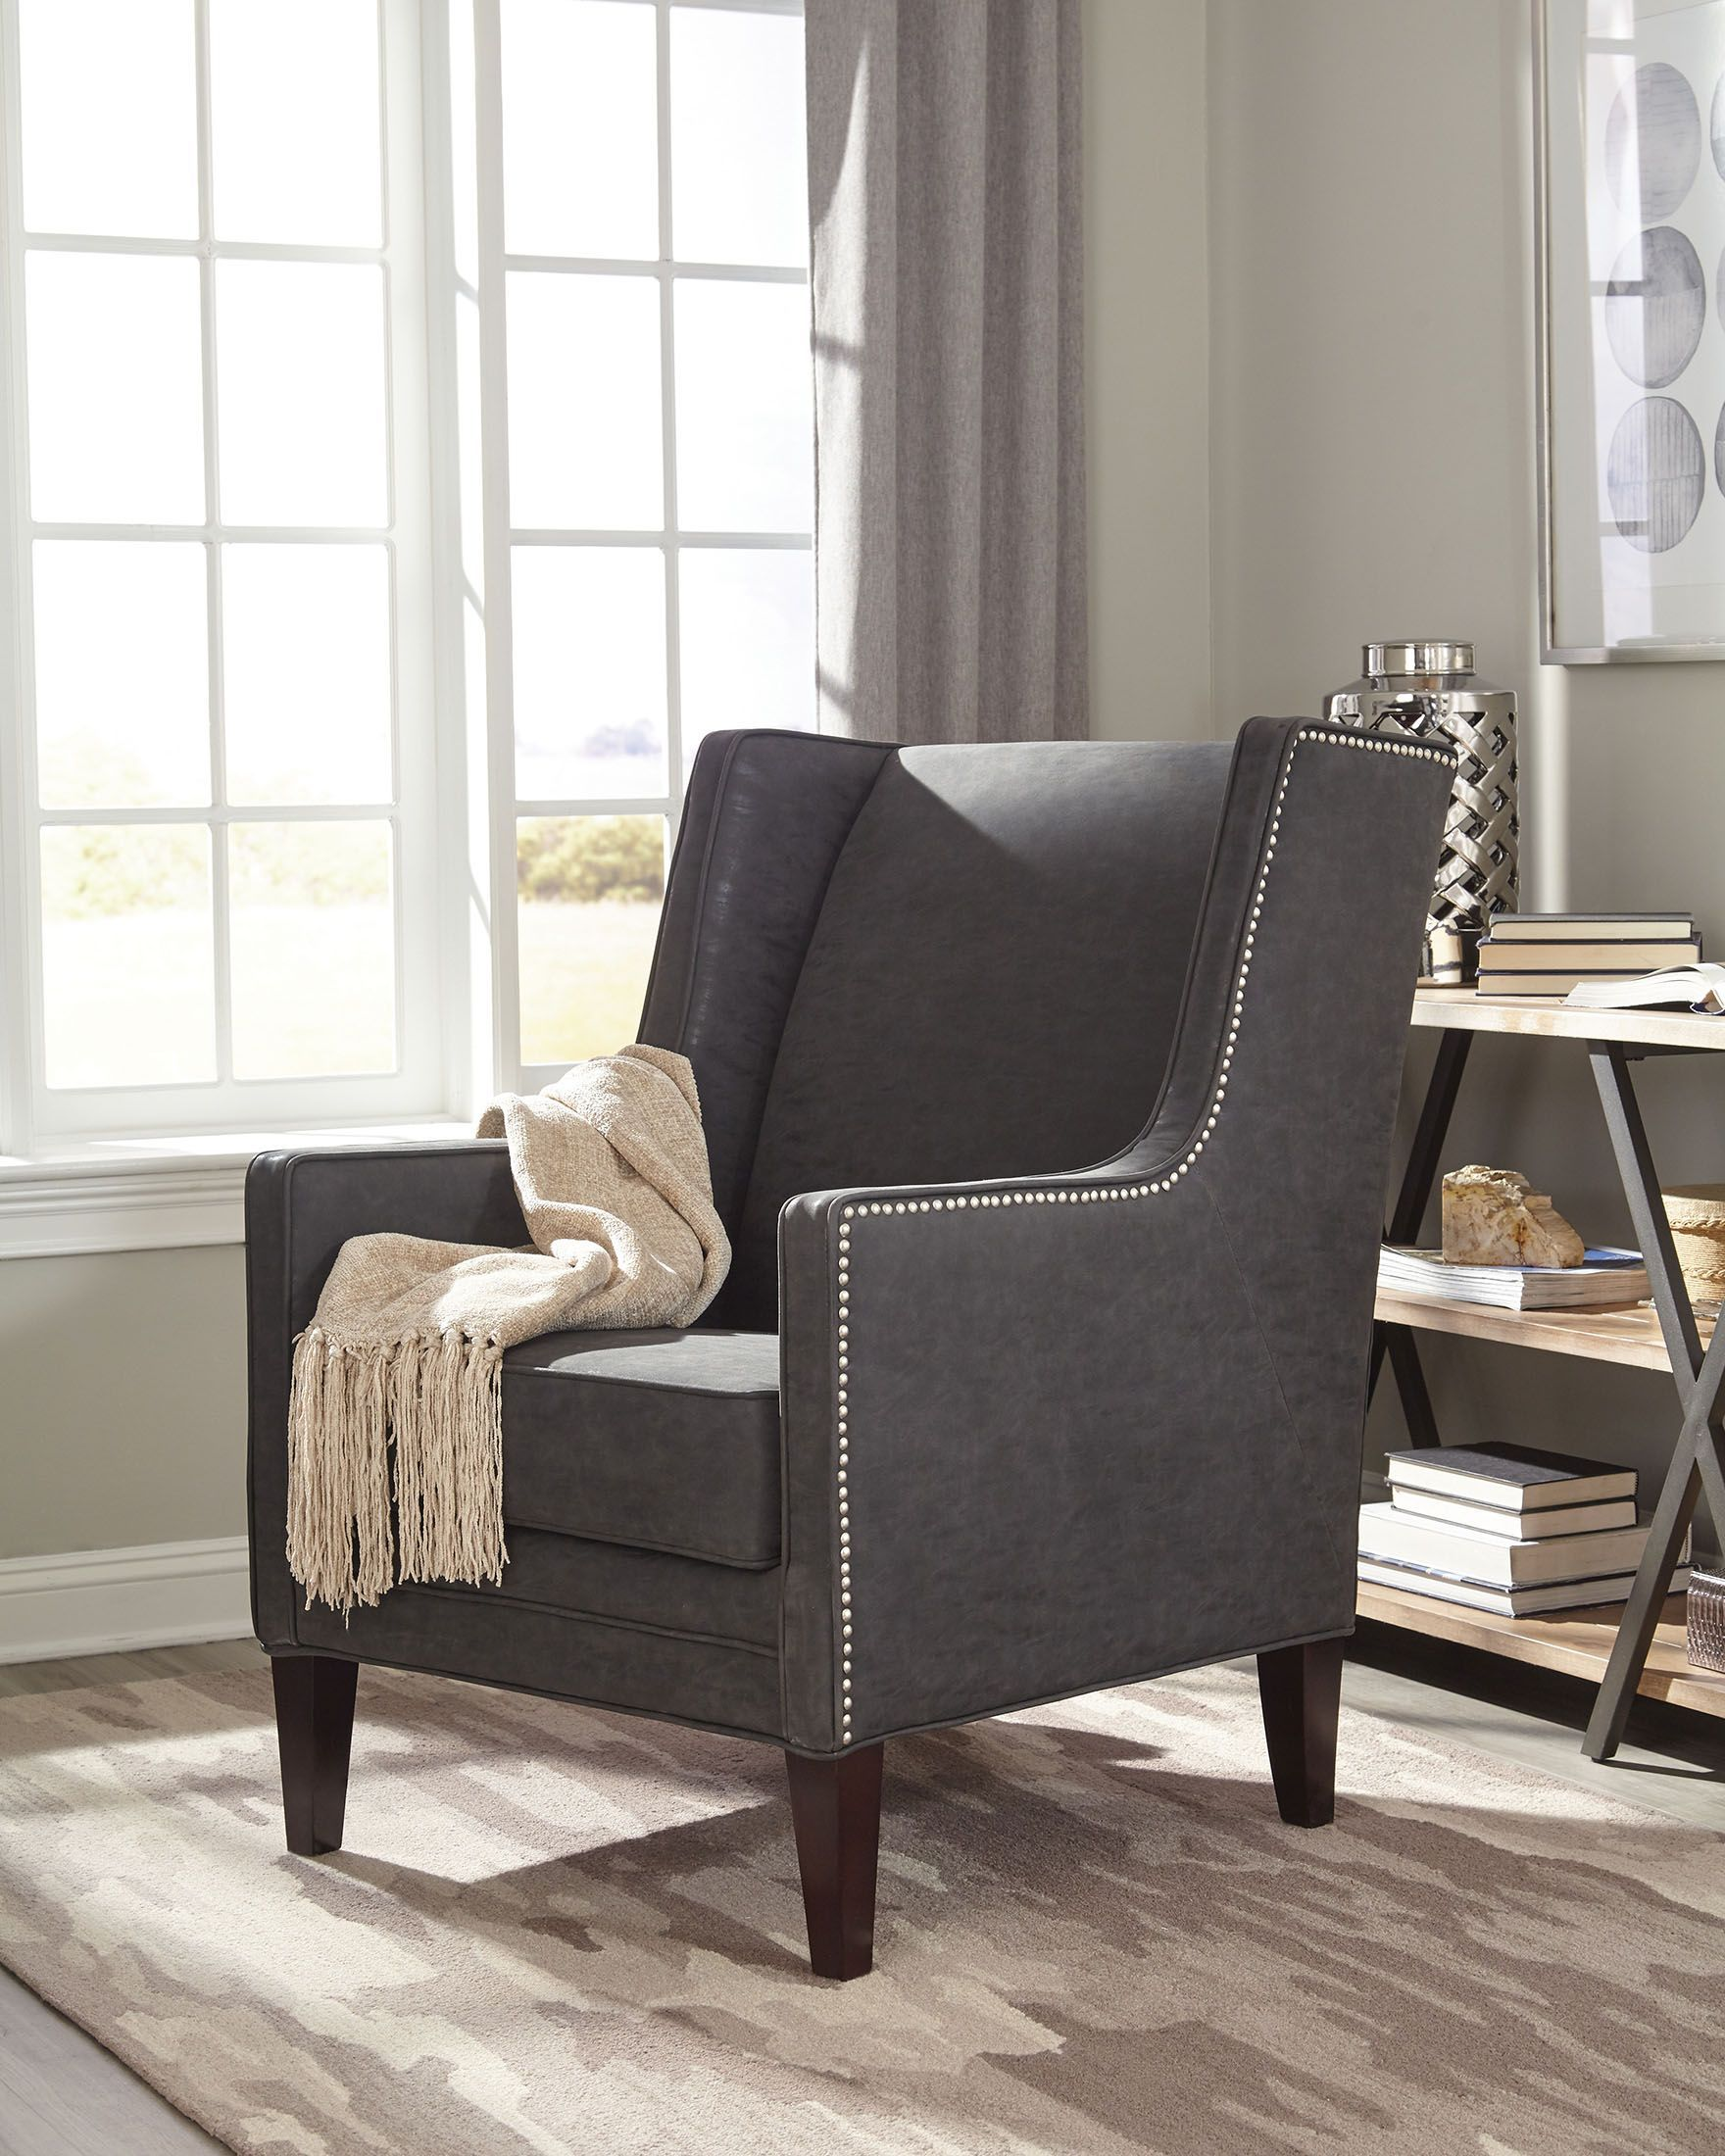 Donny Osmond Home 902988 Charcoal Fabric Accent Chair ...